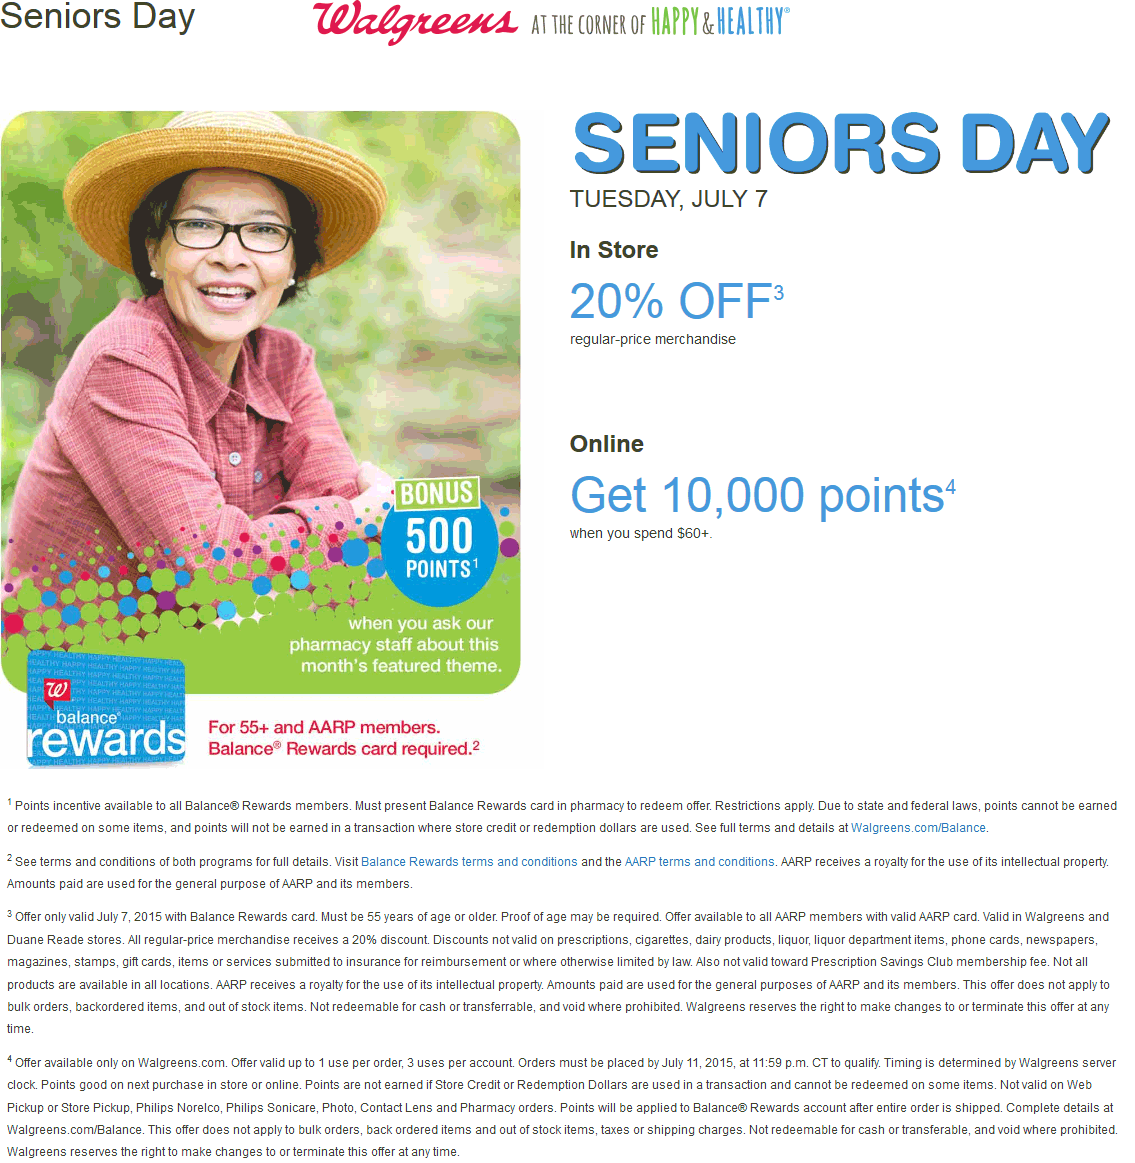 Walgreens Coupon July 2017 Seniors enjoy 20% off Tuesday at Walgreens & Duane Reade